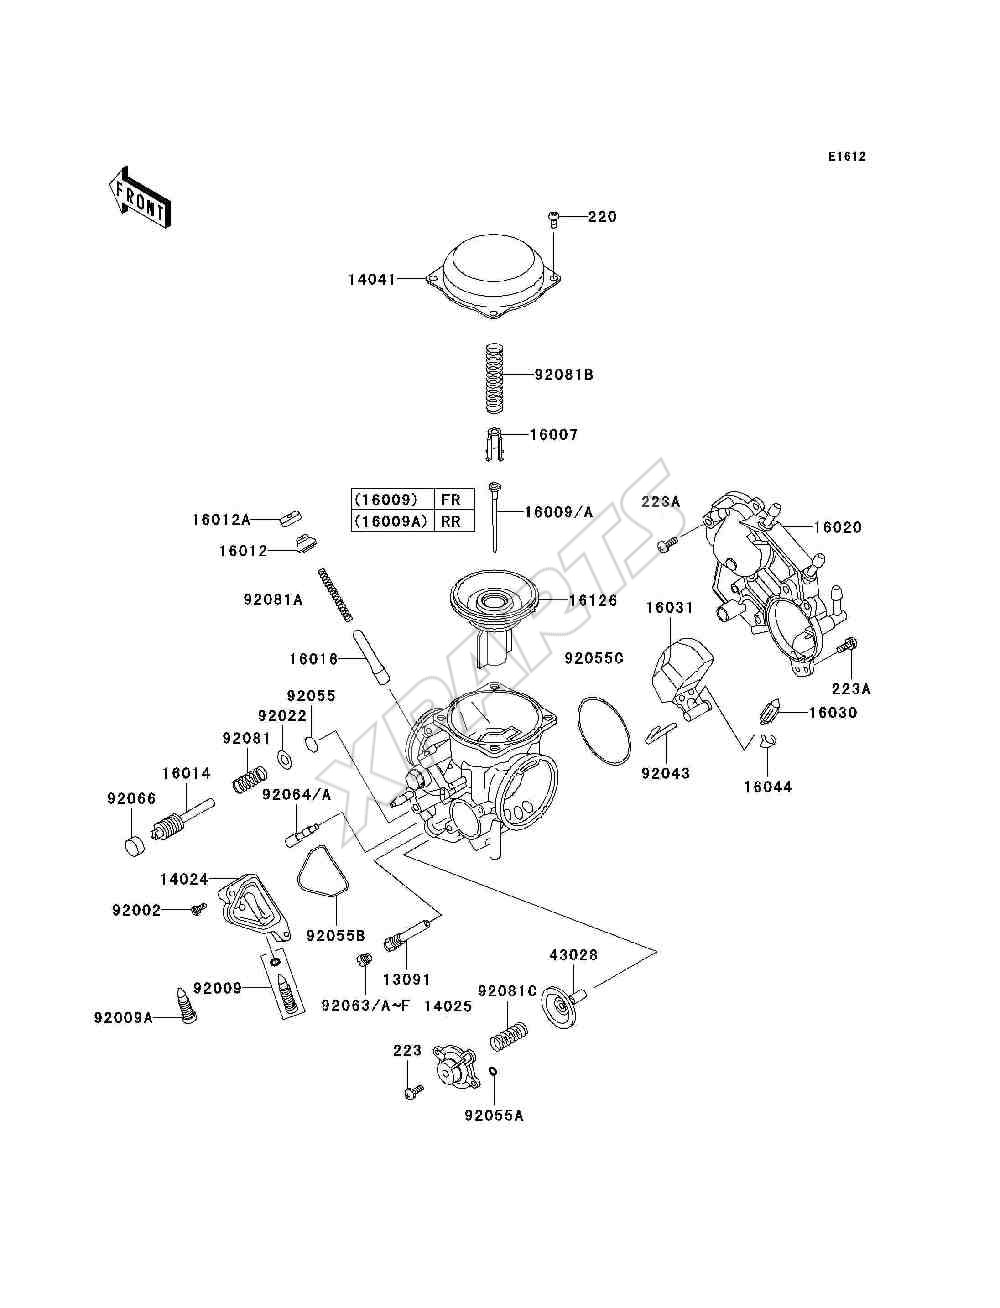 2004 Vulcan 750 Vn750 A20 Headlight Wiring Diagram Picture For Category Carburetor Parts Chassis Electrical Equipment